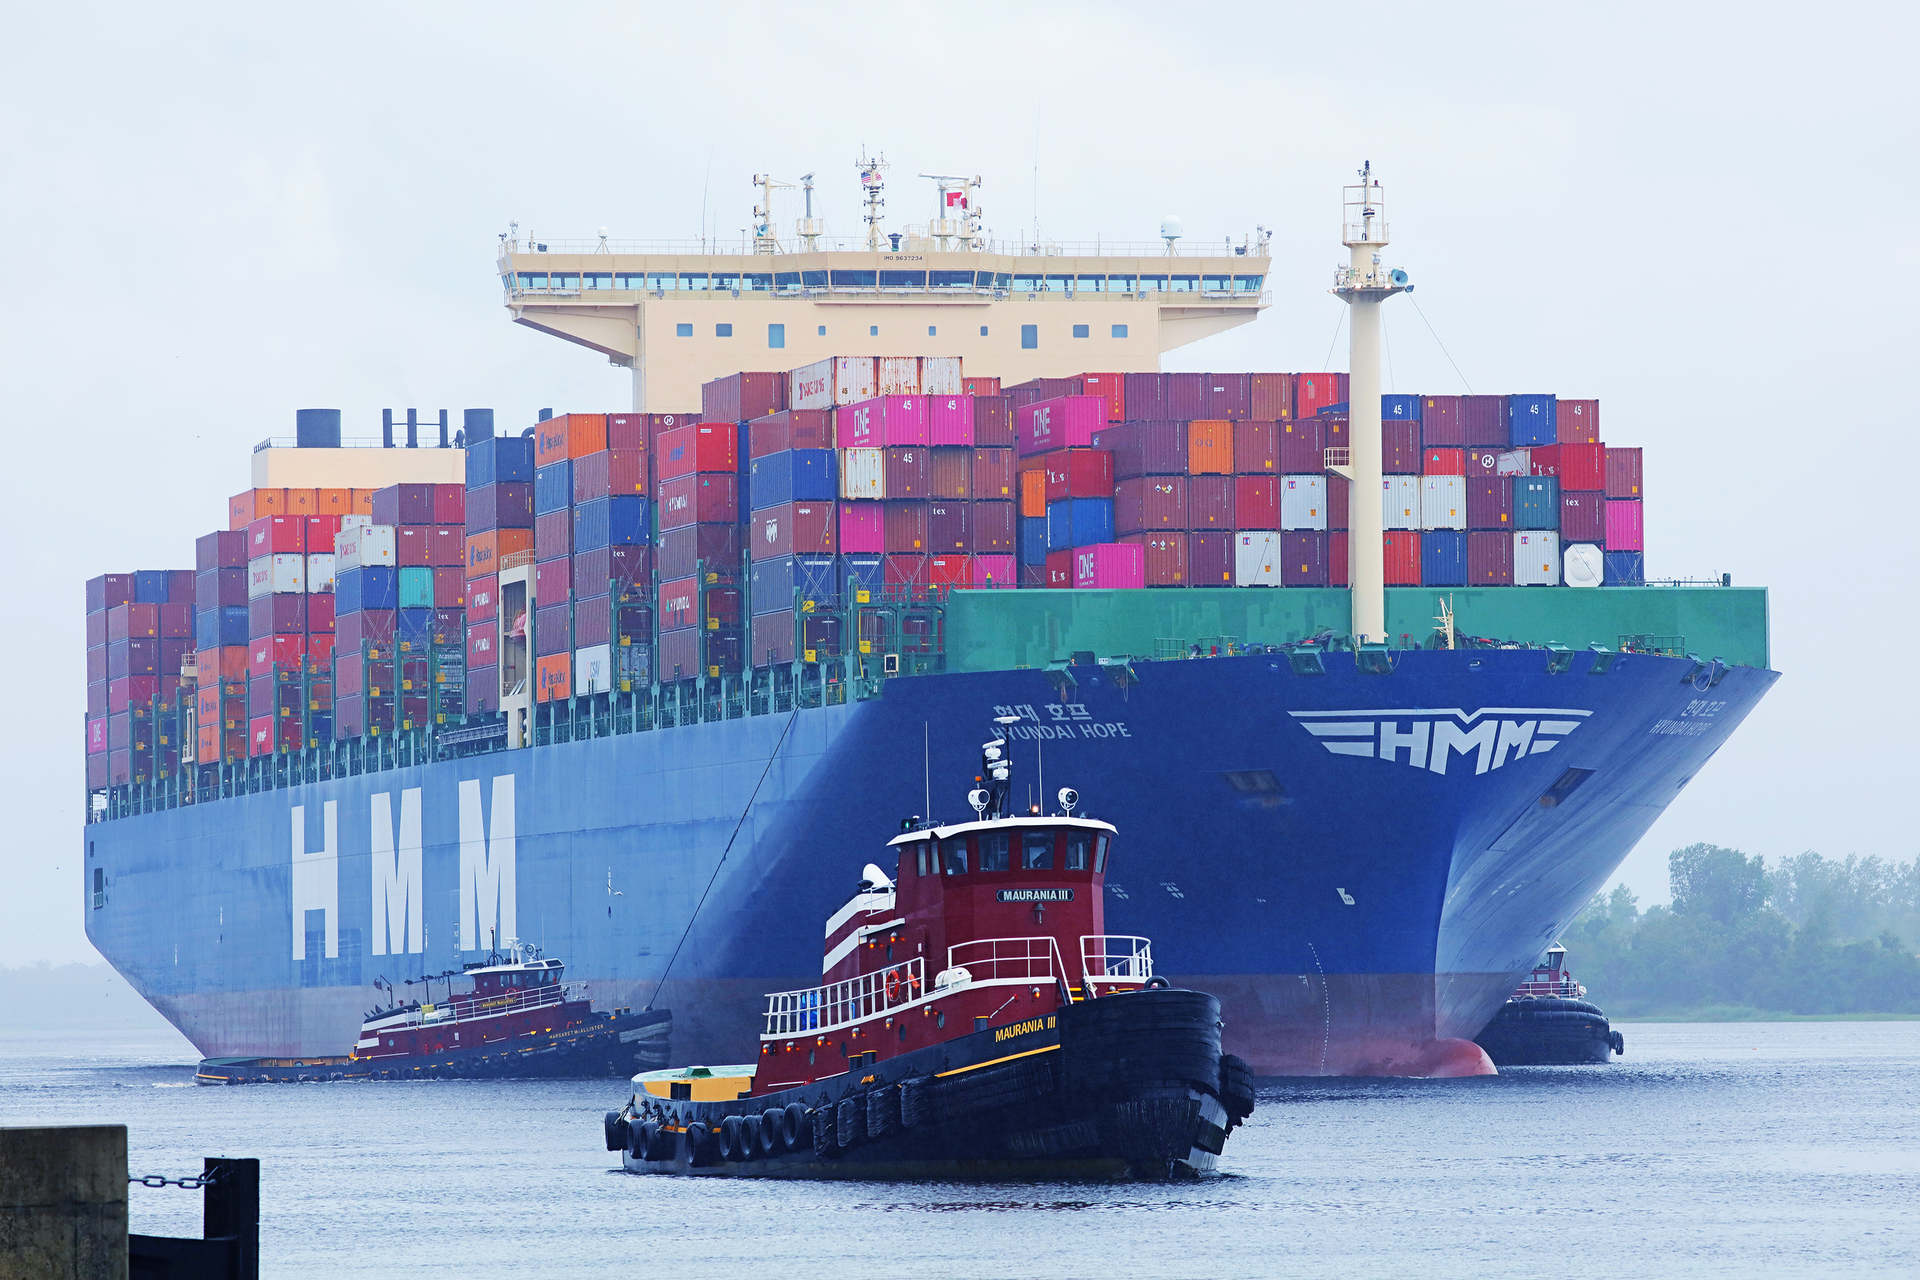 North Carolina Ports Makes History, Welcomes Largest Container Ship to the Port of Wilmington